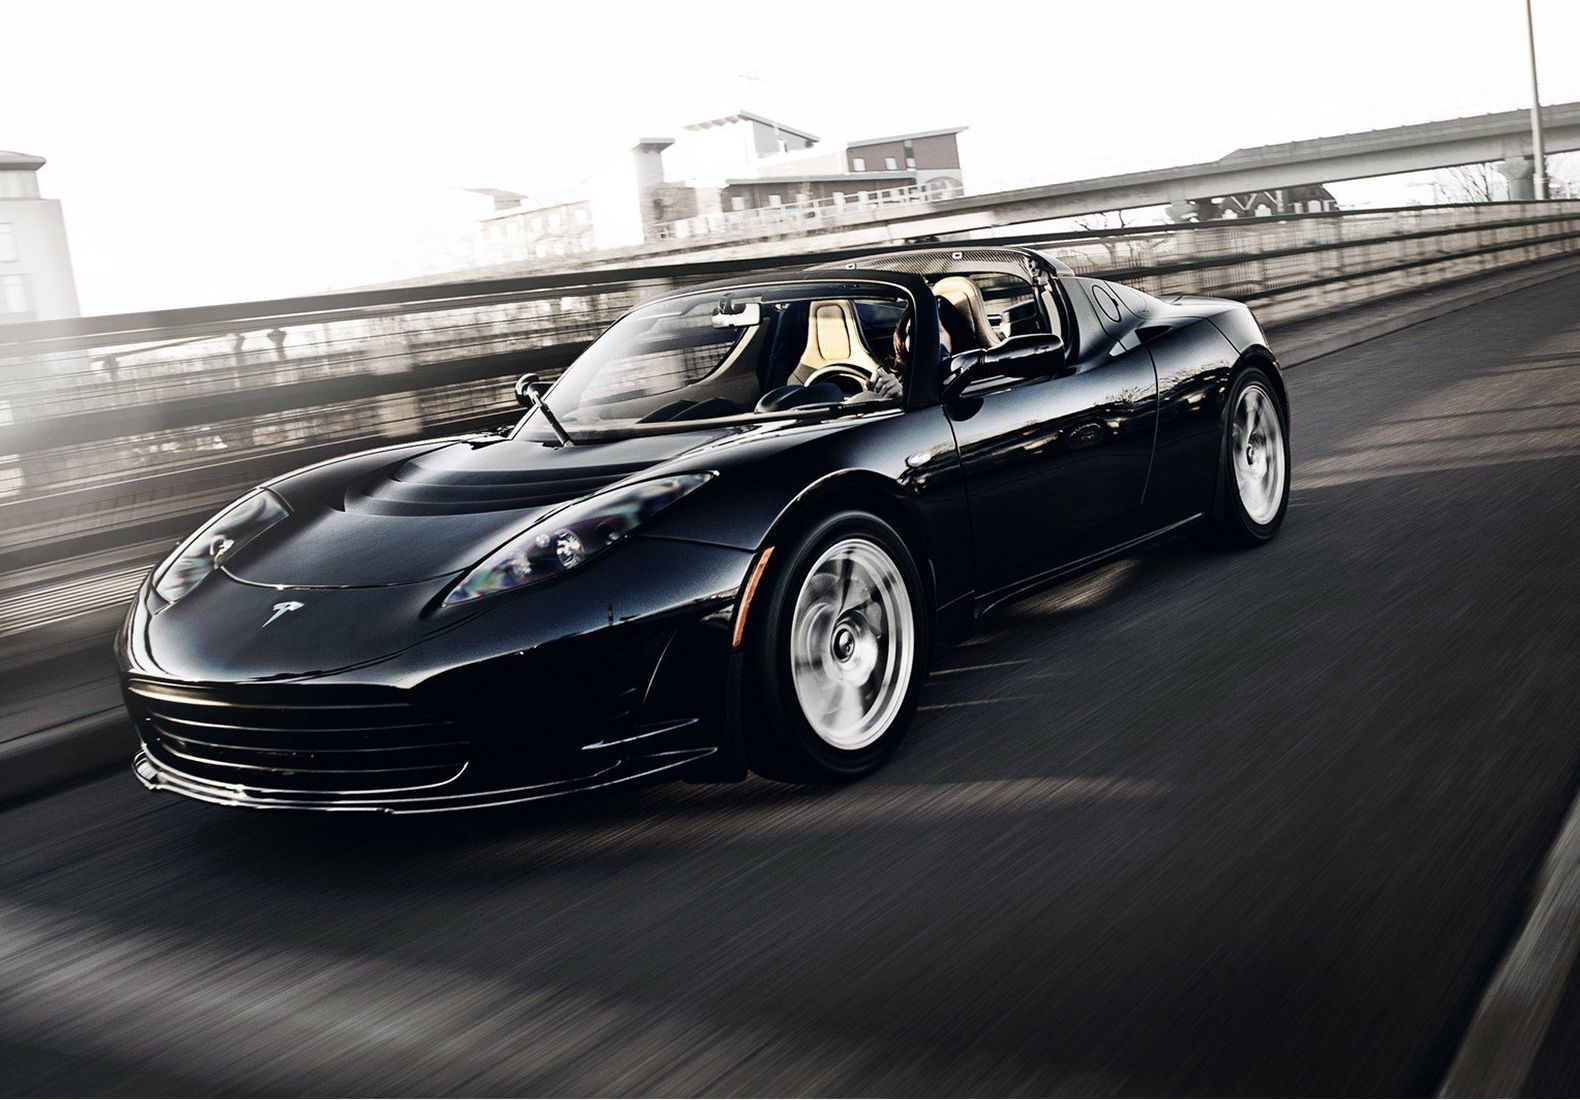 Elon Musk Just Confirmed Plans For A New Tesla Roadster Tesla Roadster Tesla Car Cheap Sports Cars